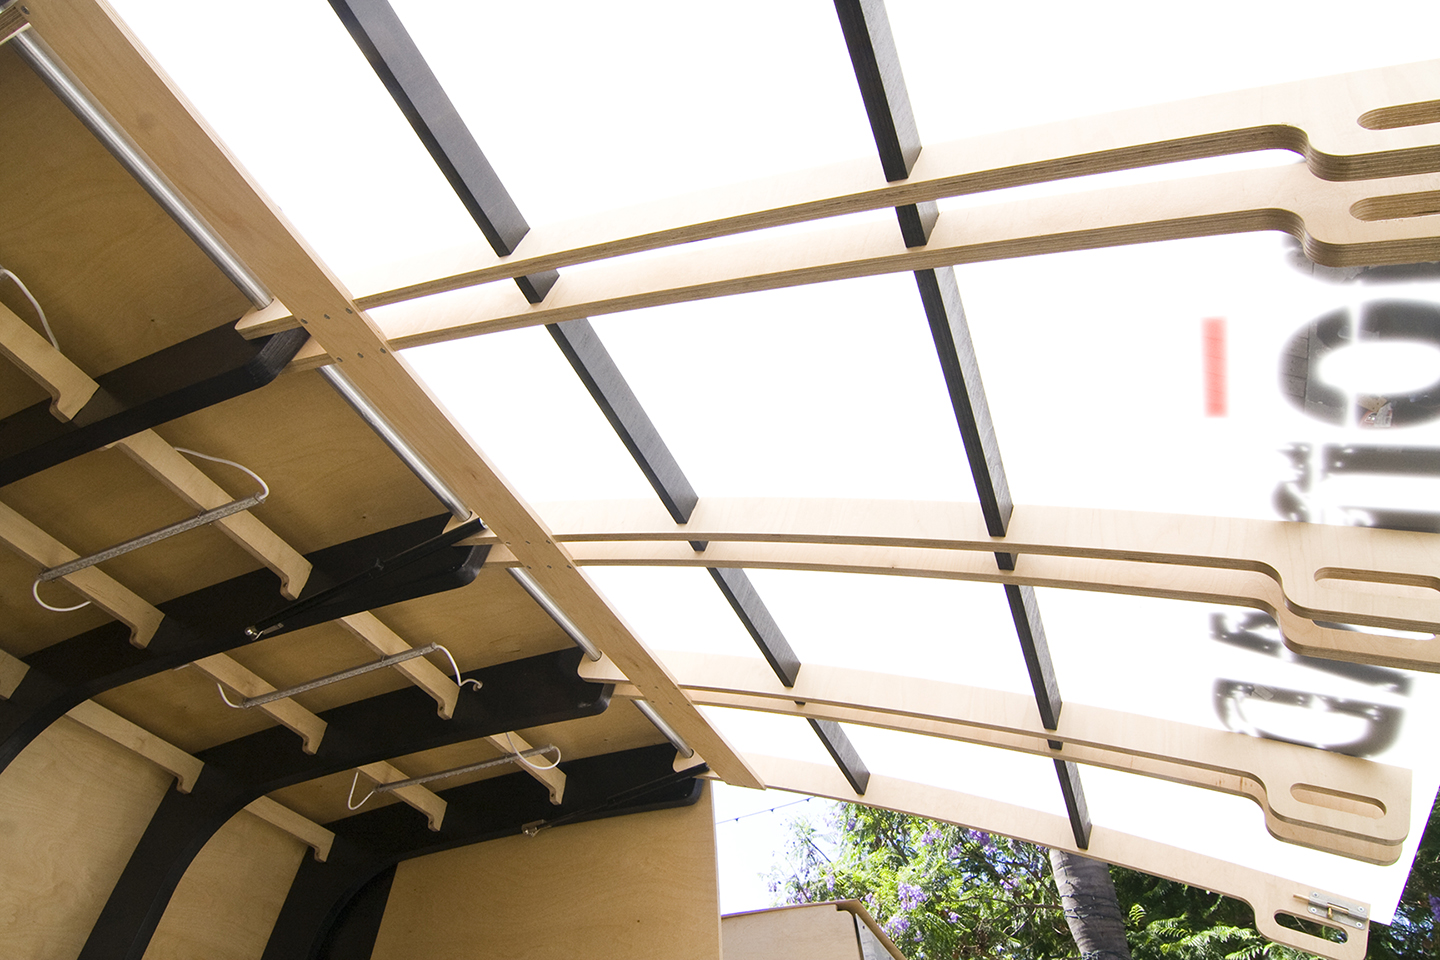 Acting as both a sun shade and light diffuser, the top lifts well above head height on a hydraulic arm.